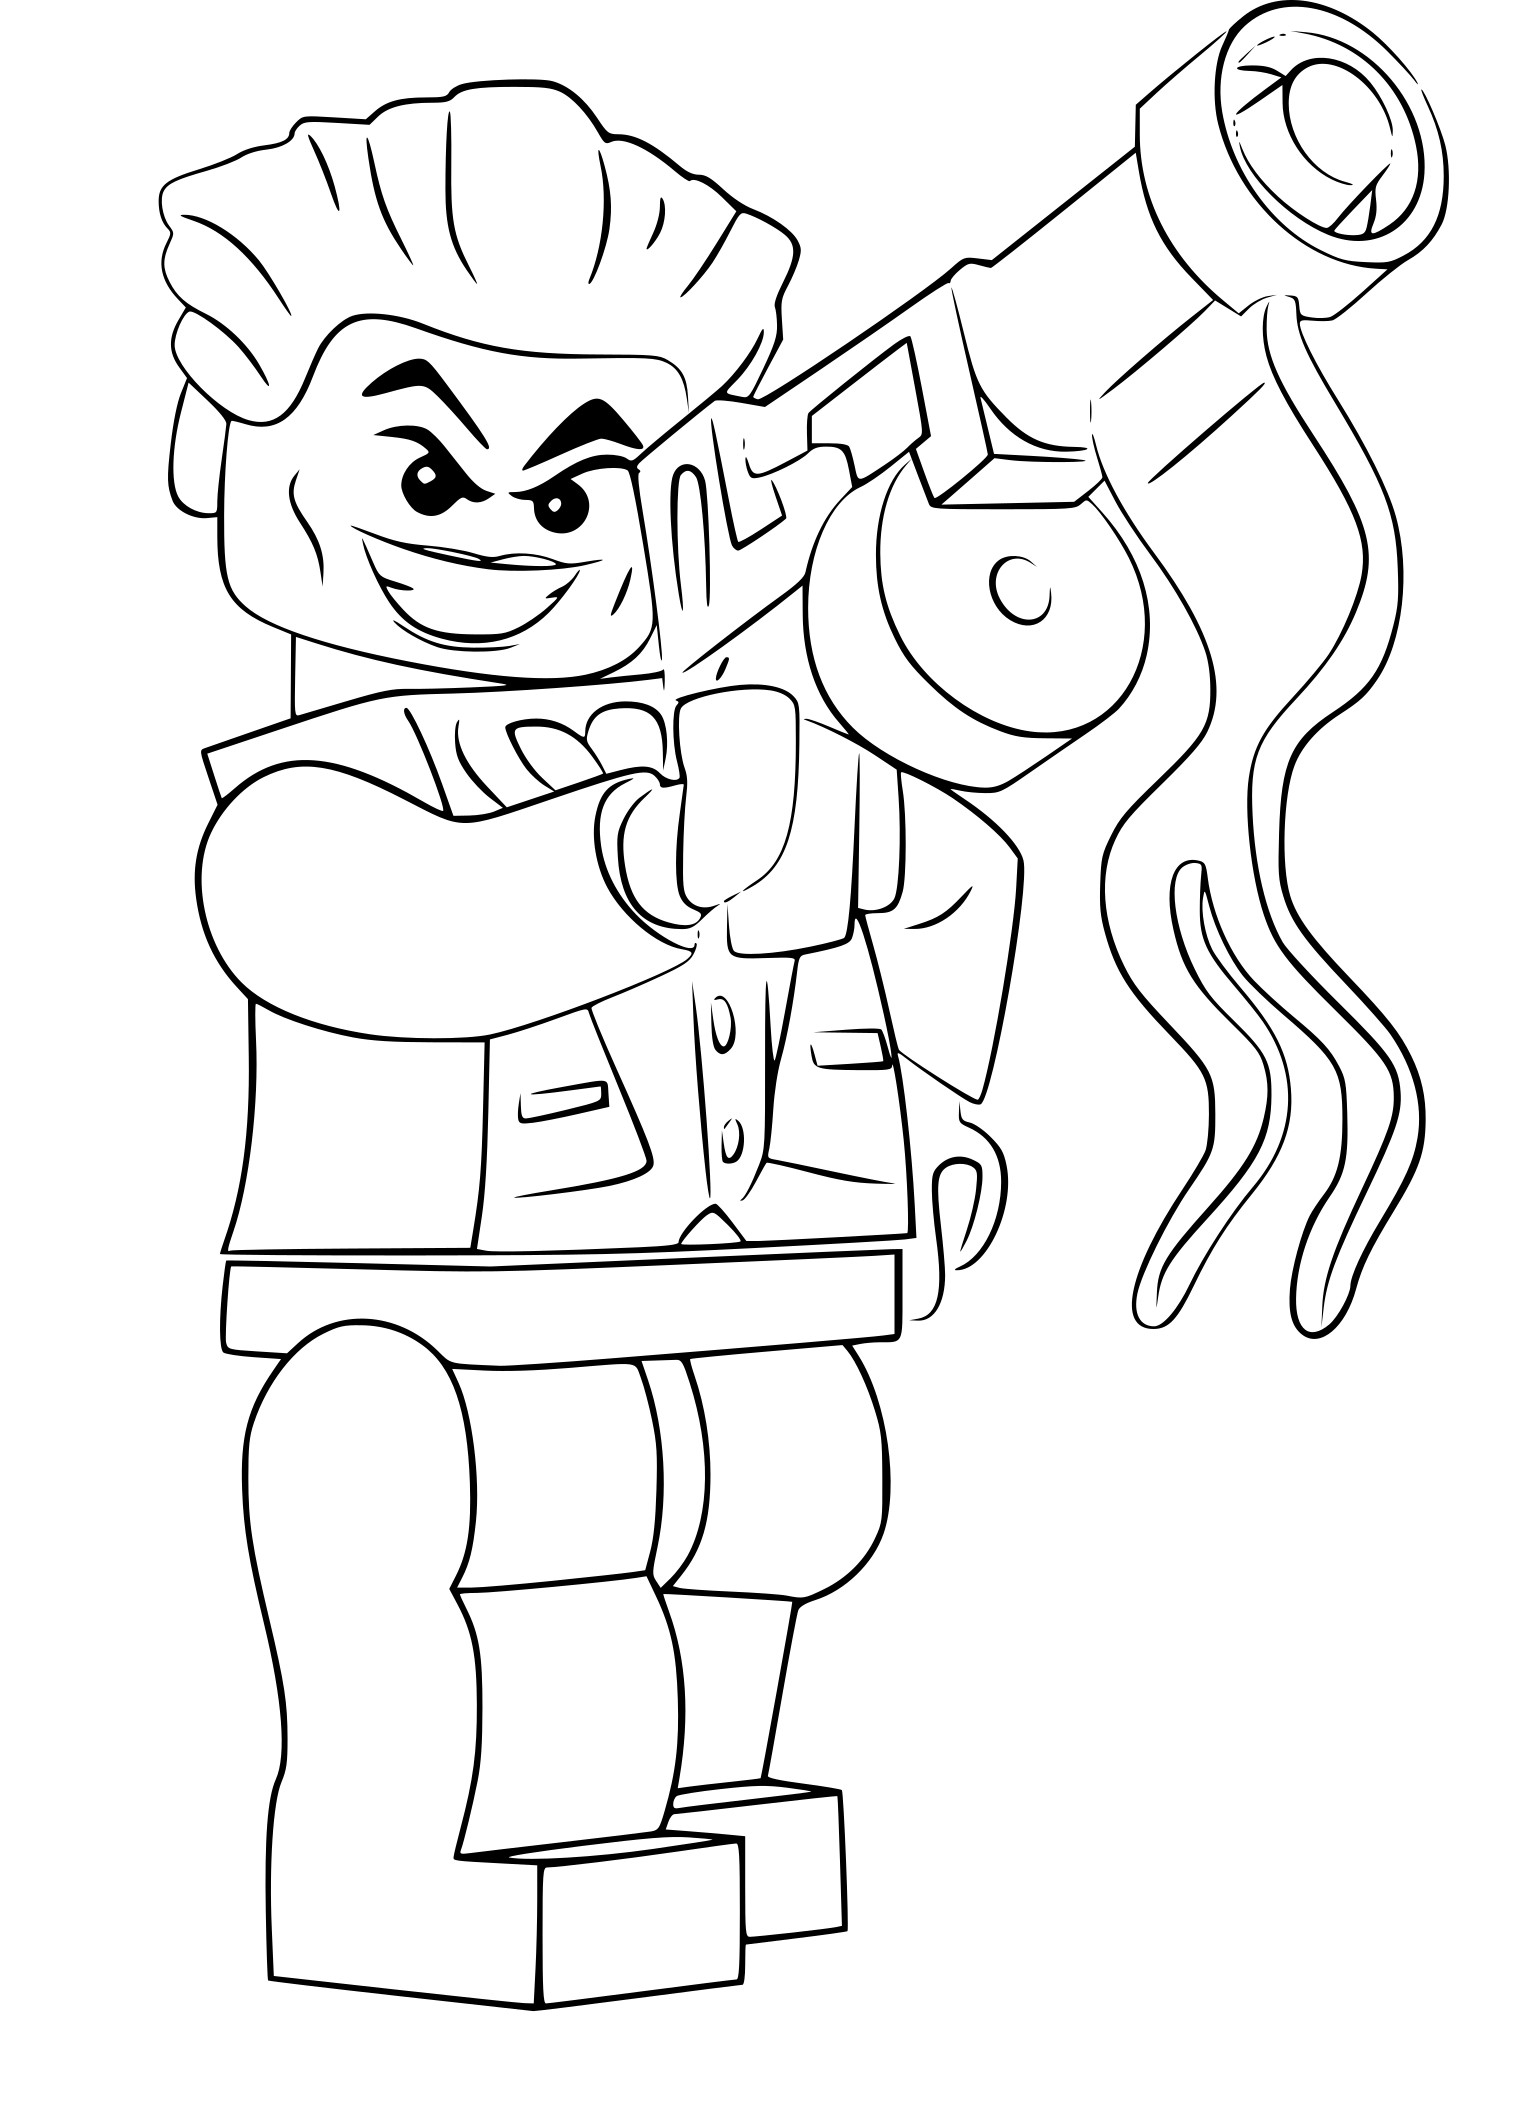 27 Lego Flash Coloring Pages Images Free Coloring Pages